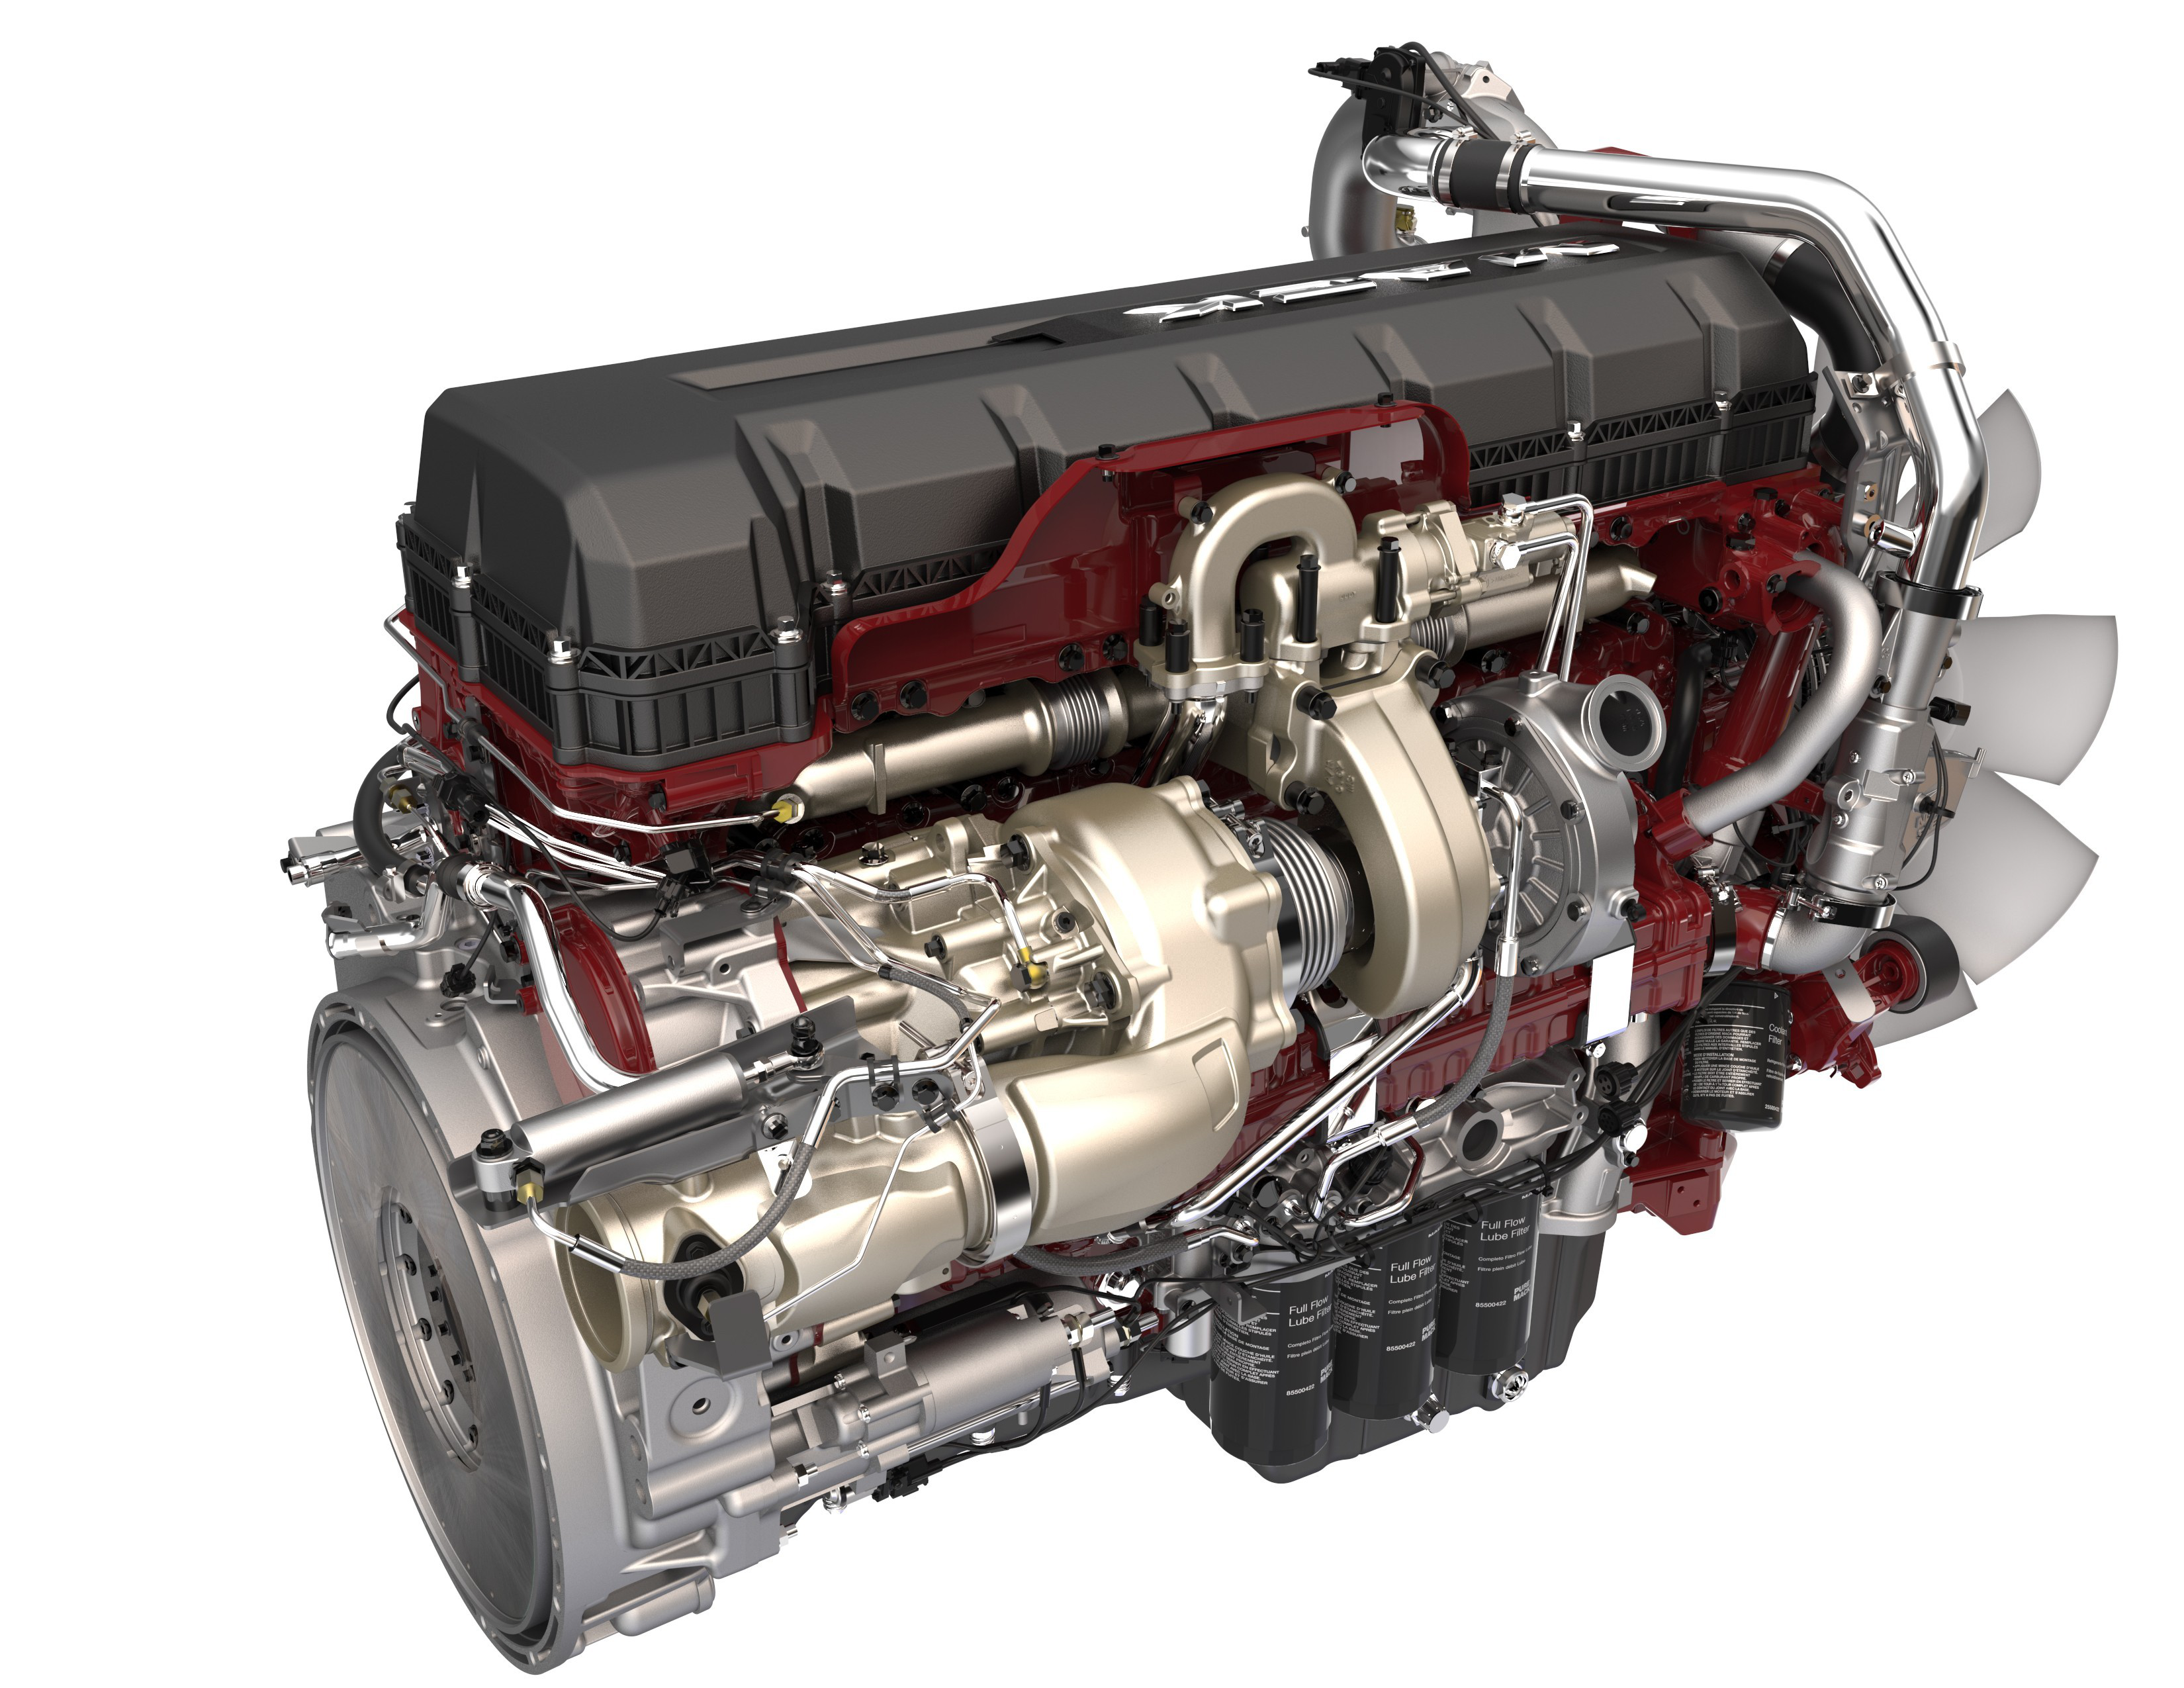 Mack Introduces 2017 Mp Series Engines Medium Duty Work Truck Info Fuel Filters Trucks Today Revealed The Next Step In Evolution Of Its Integrated Powertrain By Introducing Bringing Improvements